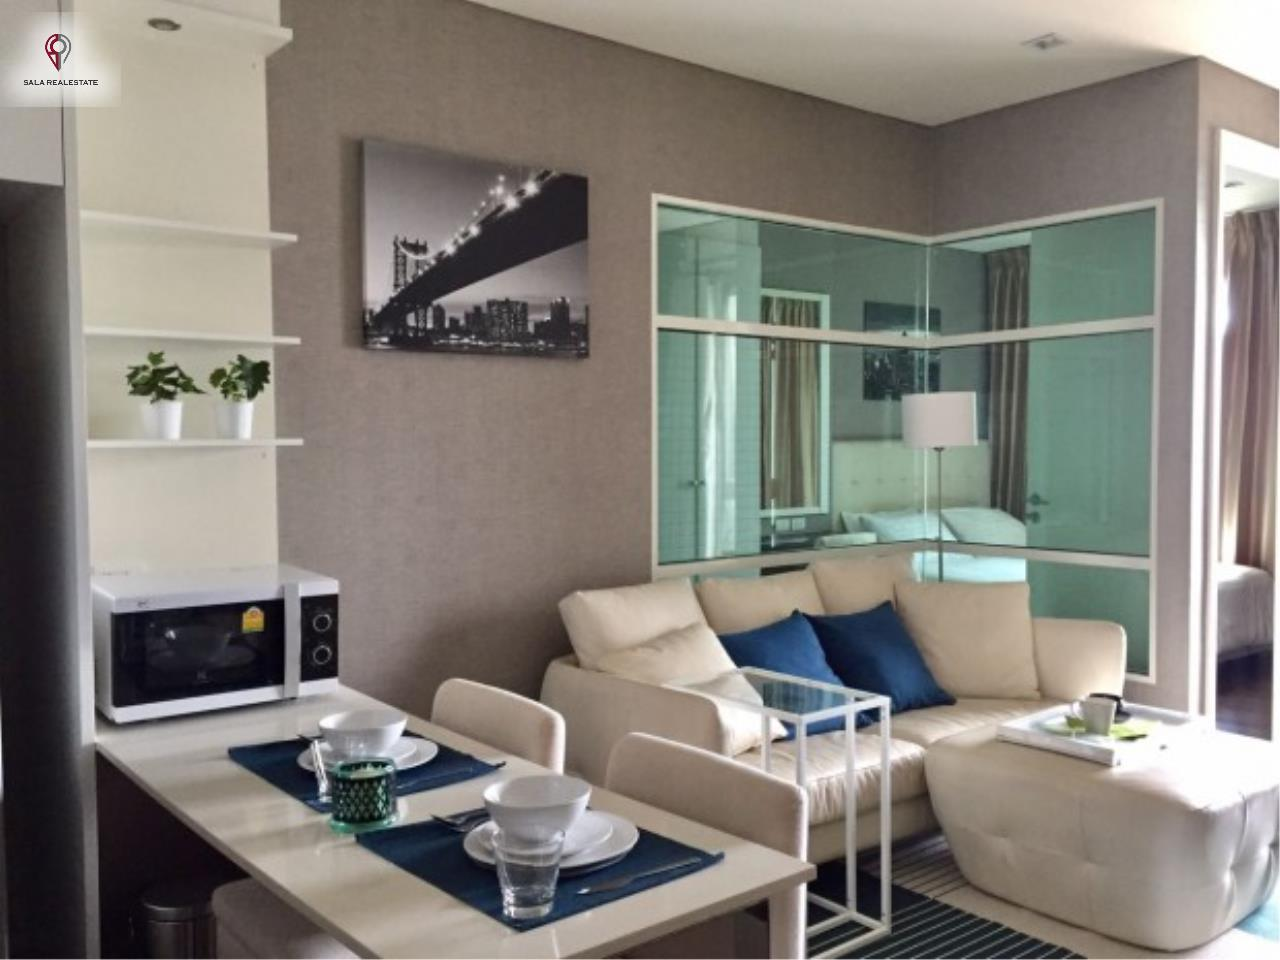 SALA ESTATE Agency's IVY THONGLOR - NEAR BTS THONGLOR  1